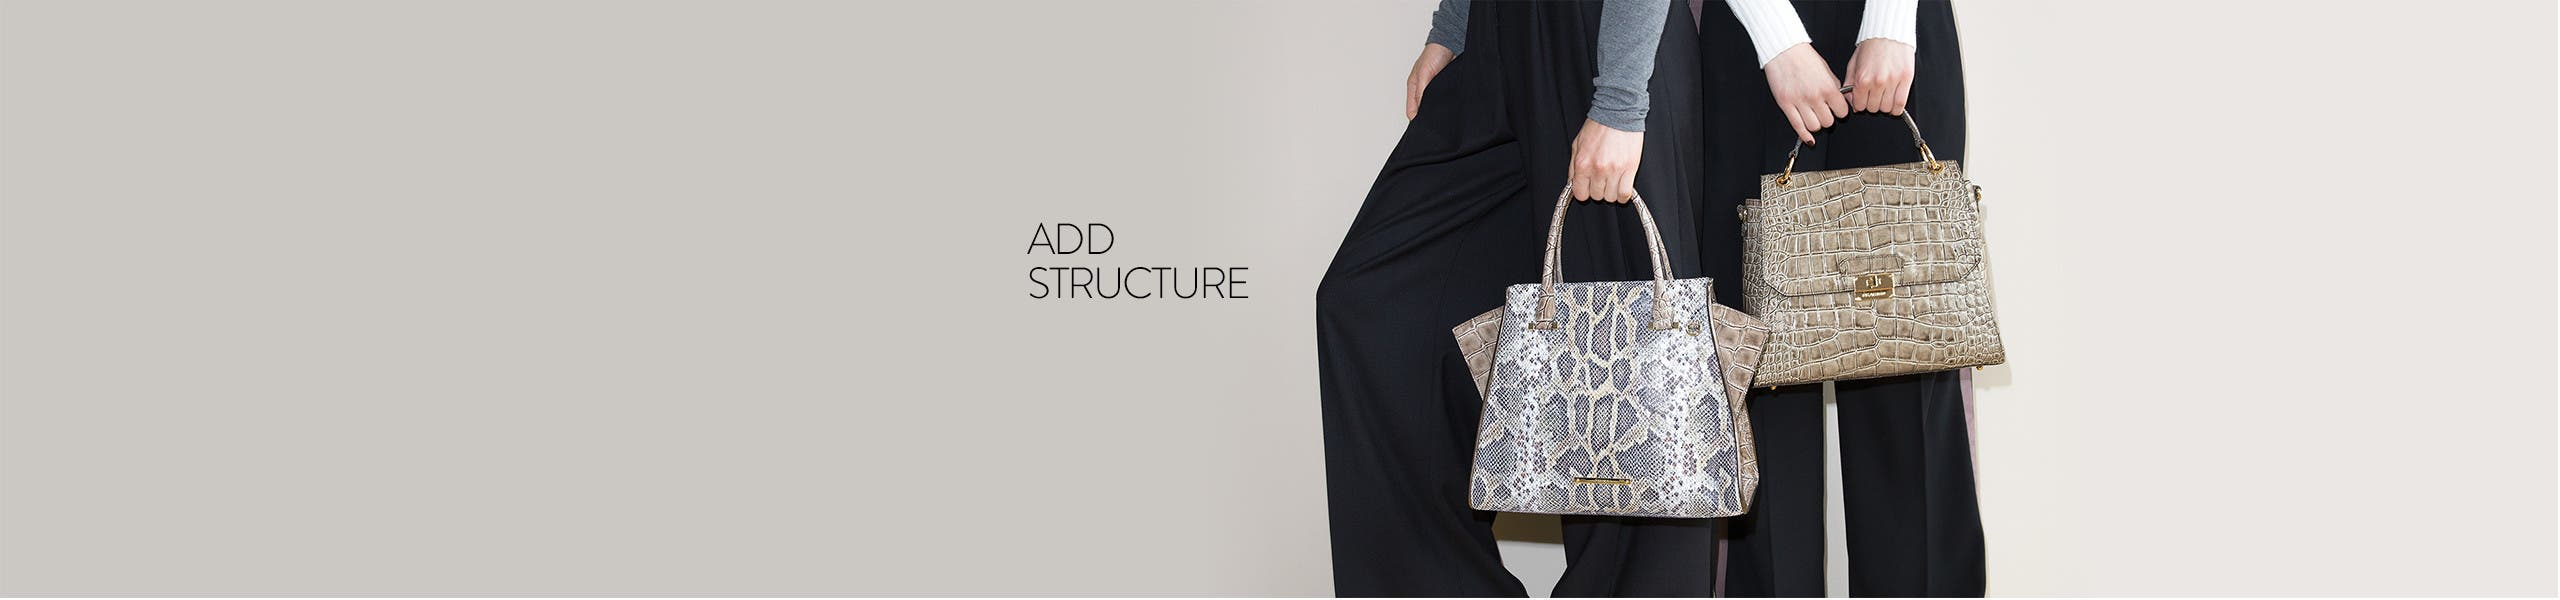 Add structure: architectural bags.